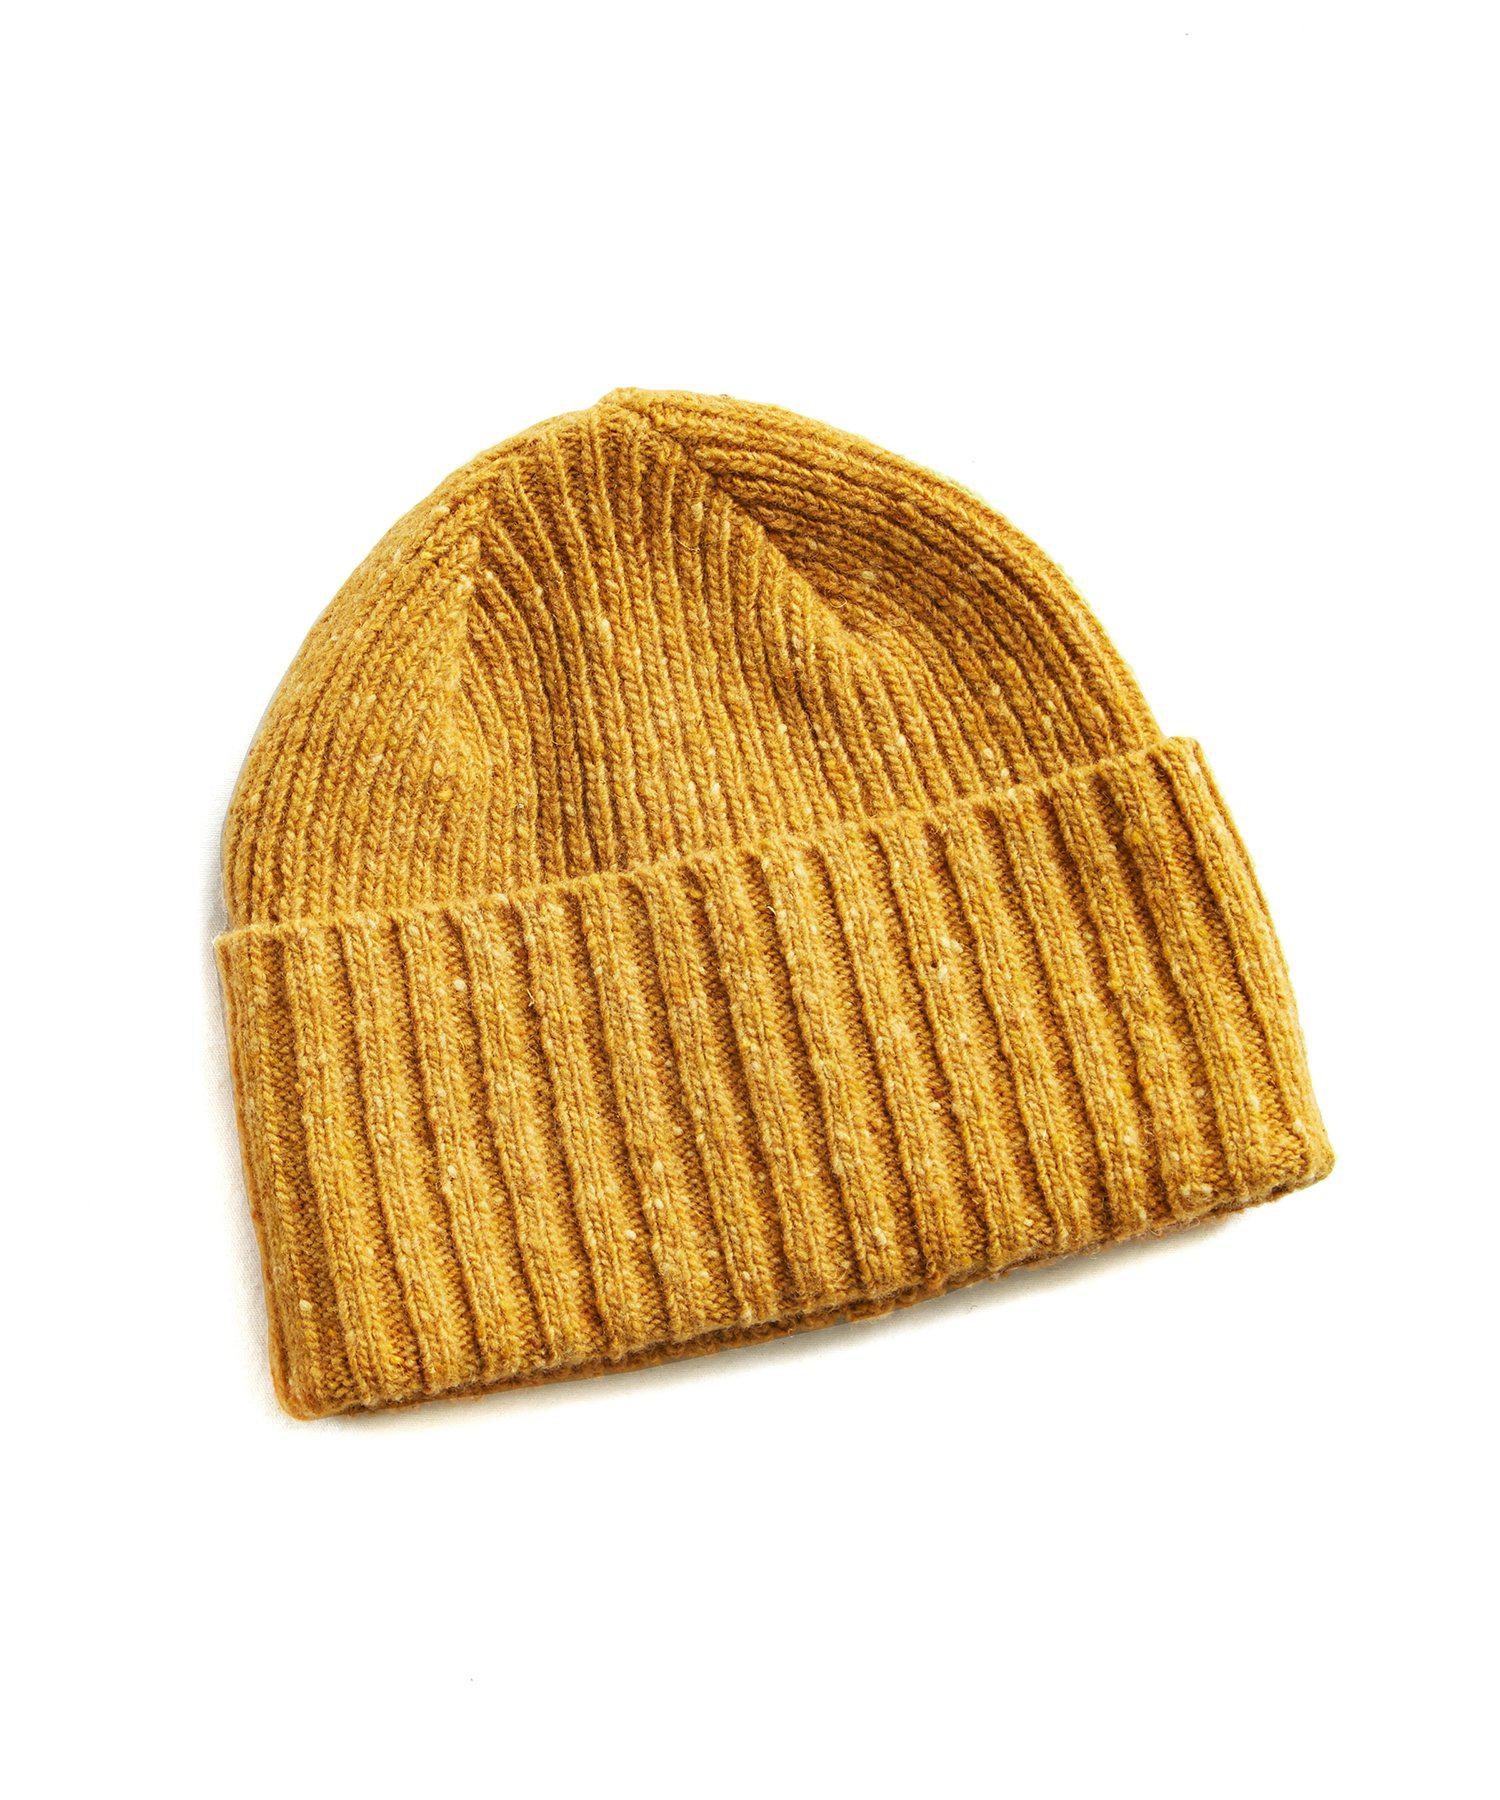 Lyst - Drake s Donegal Merino Wool Hat In Yellow in Yellow for Men 90eb6526c6e0